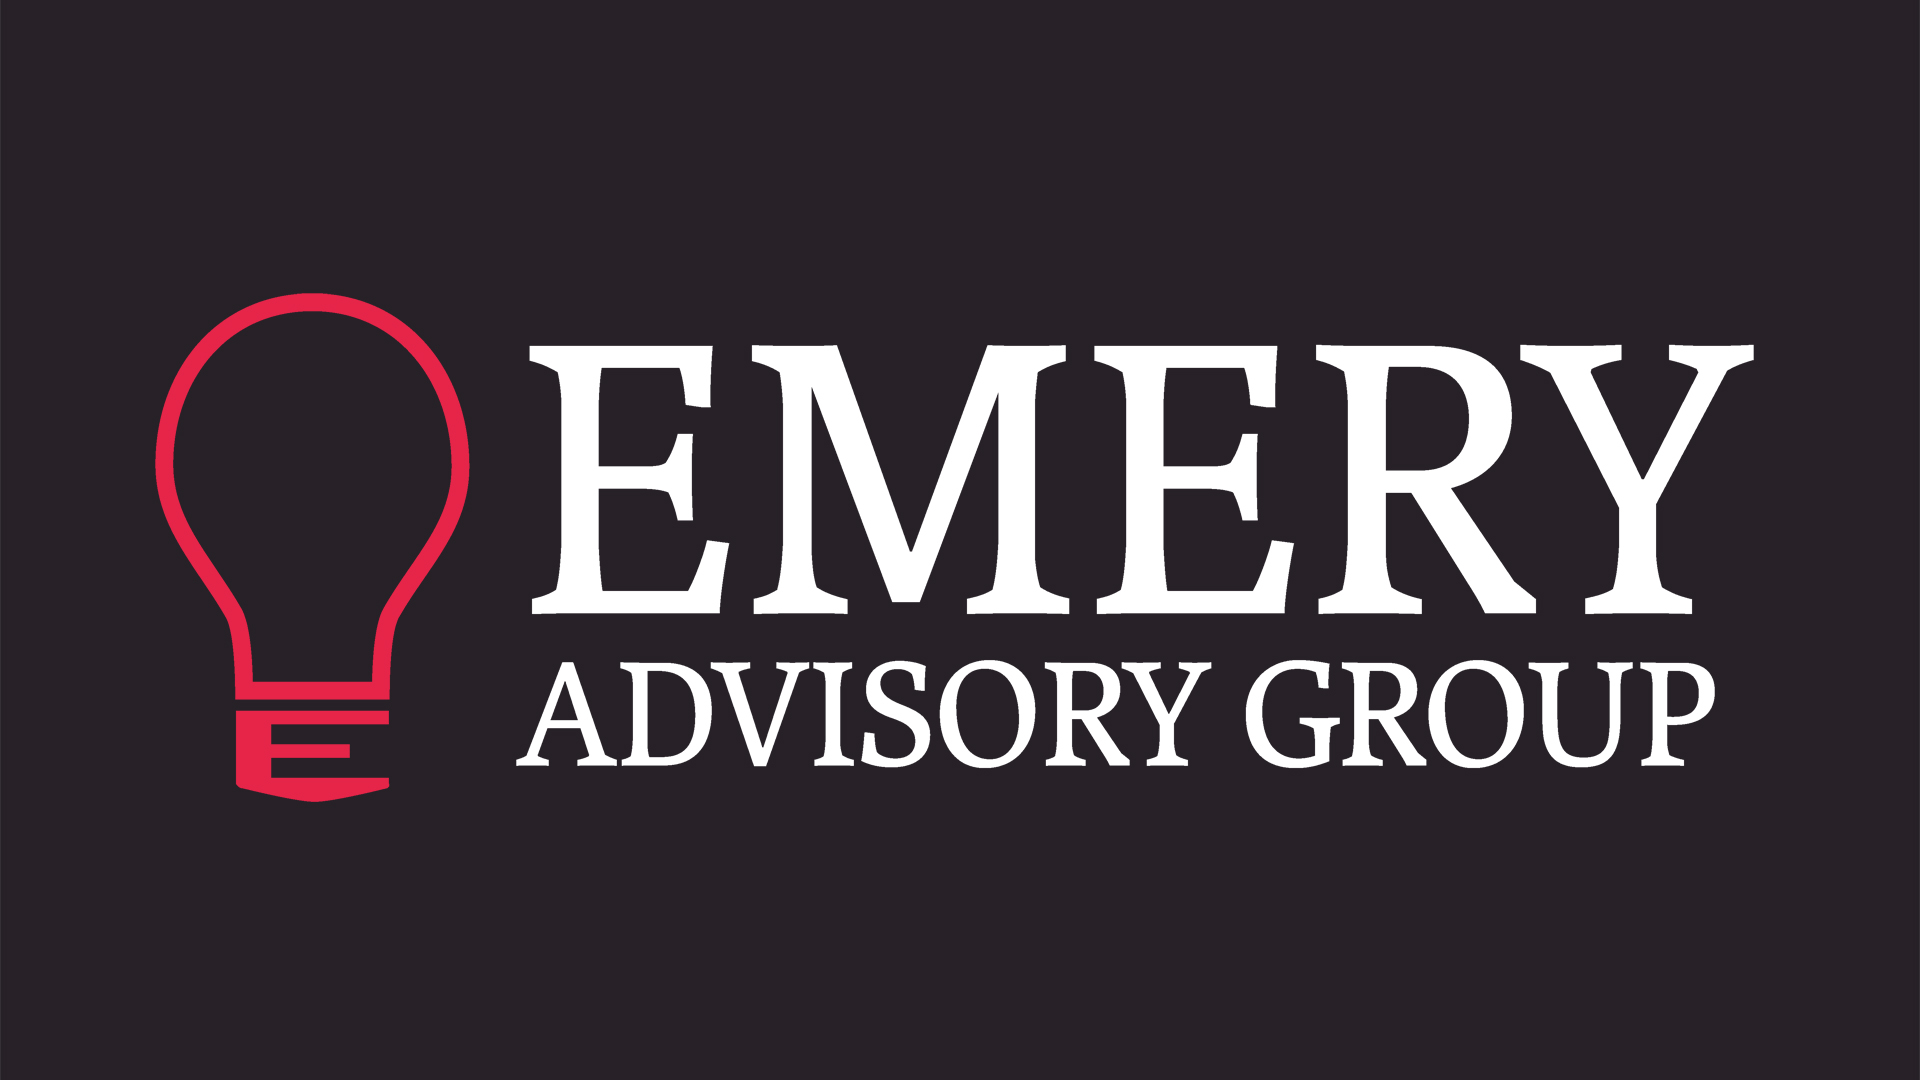 Emery Advisory Group